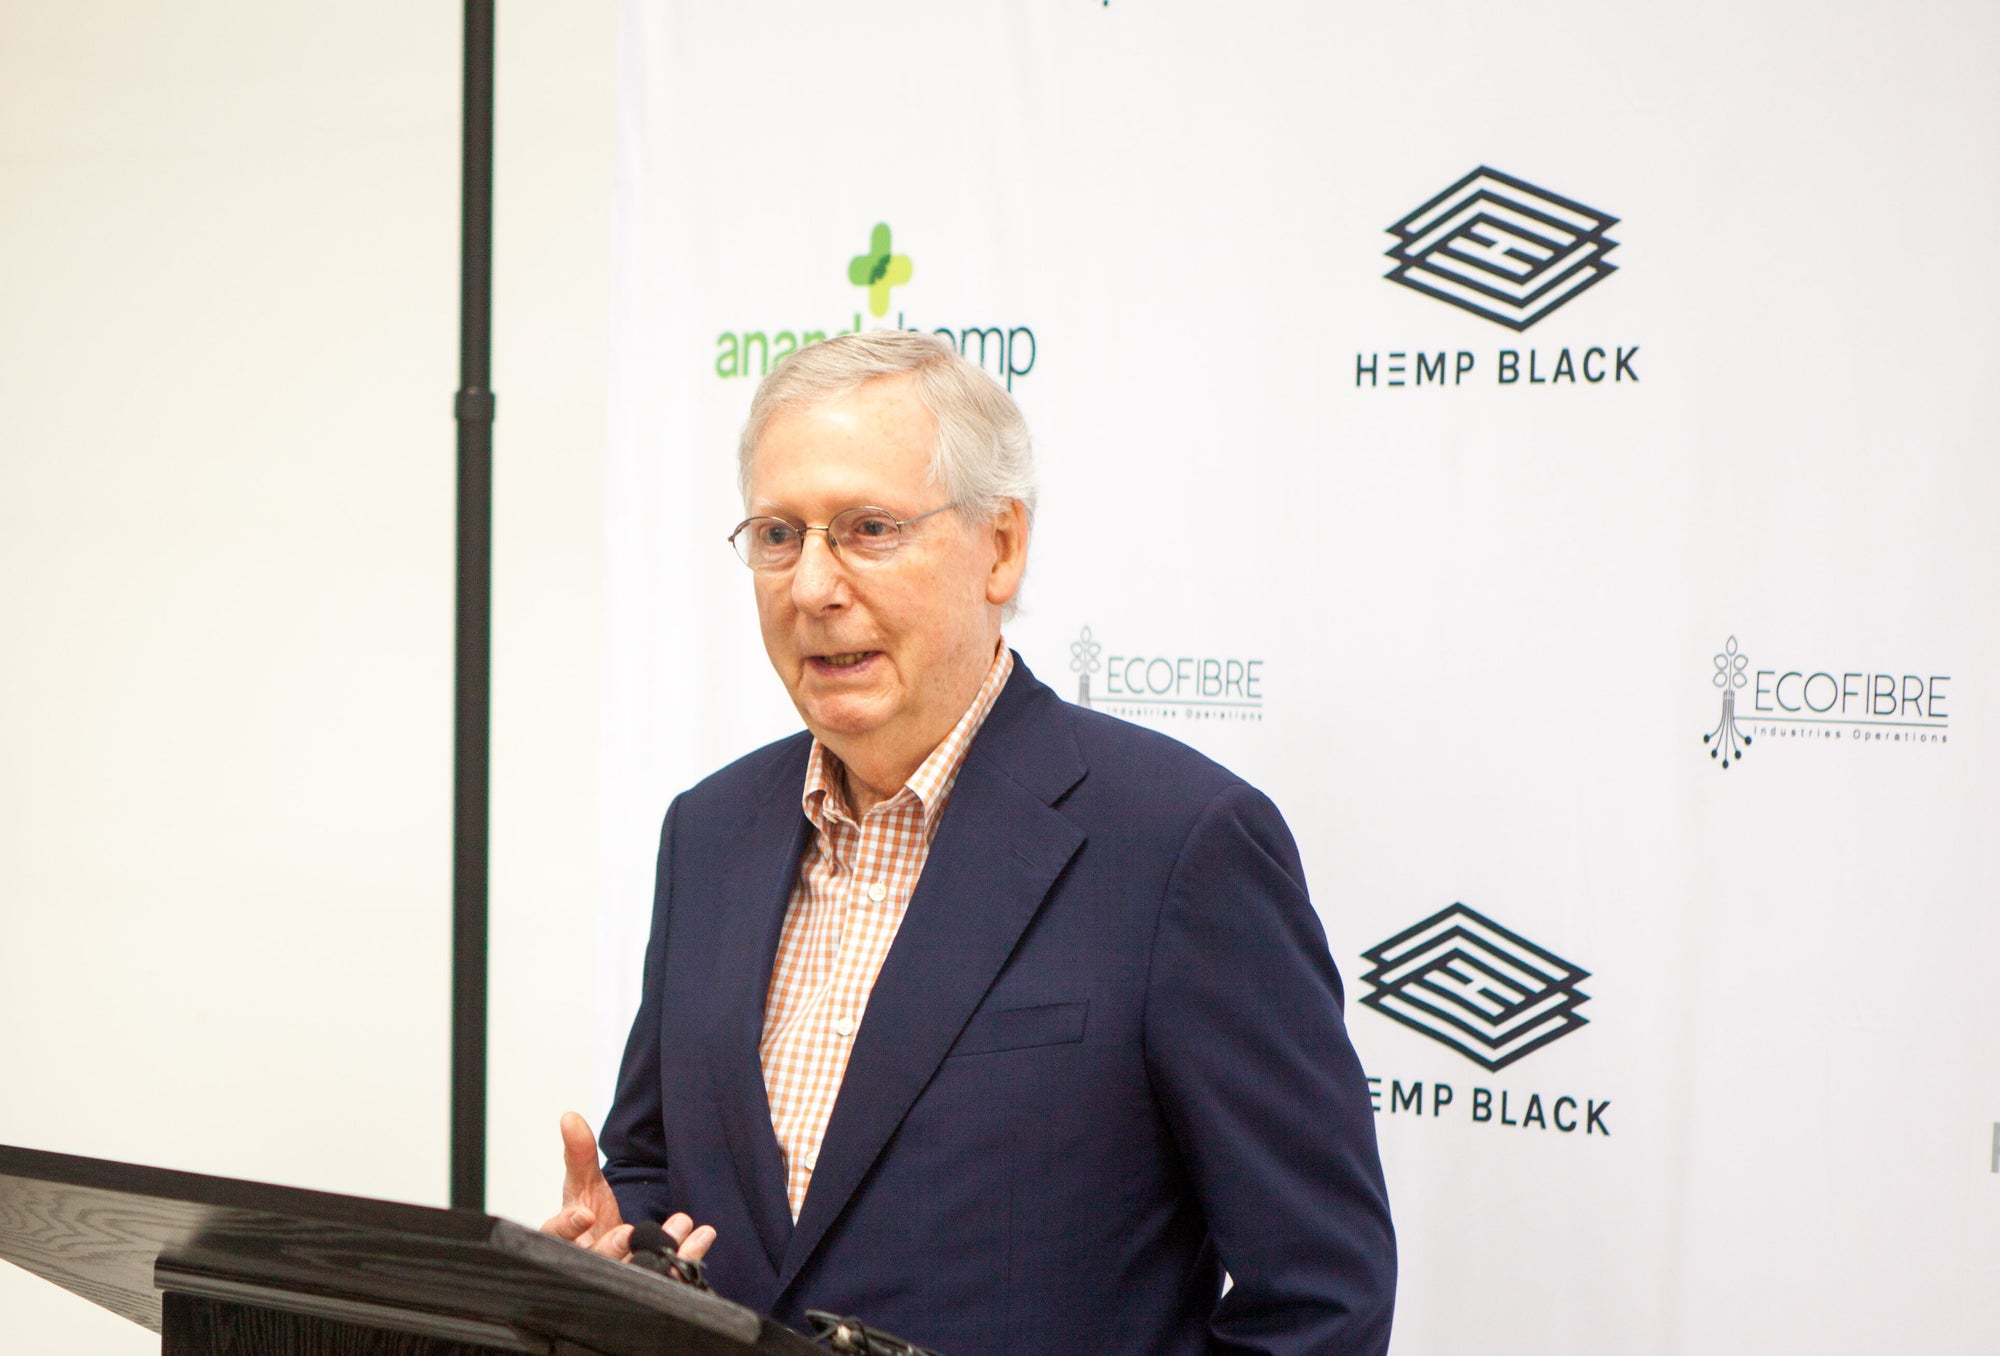 Ananda Hemp and Mitch McConnell